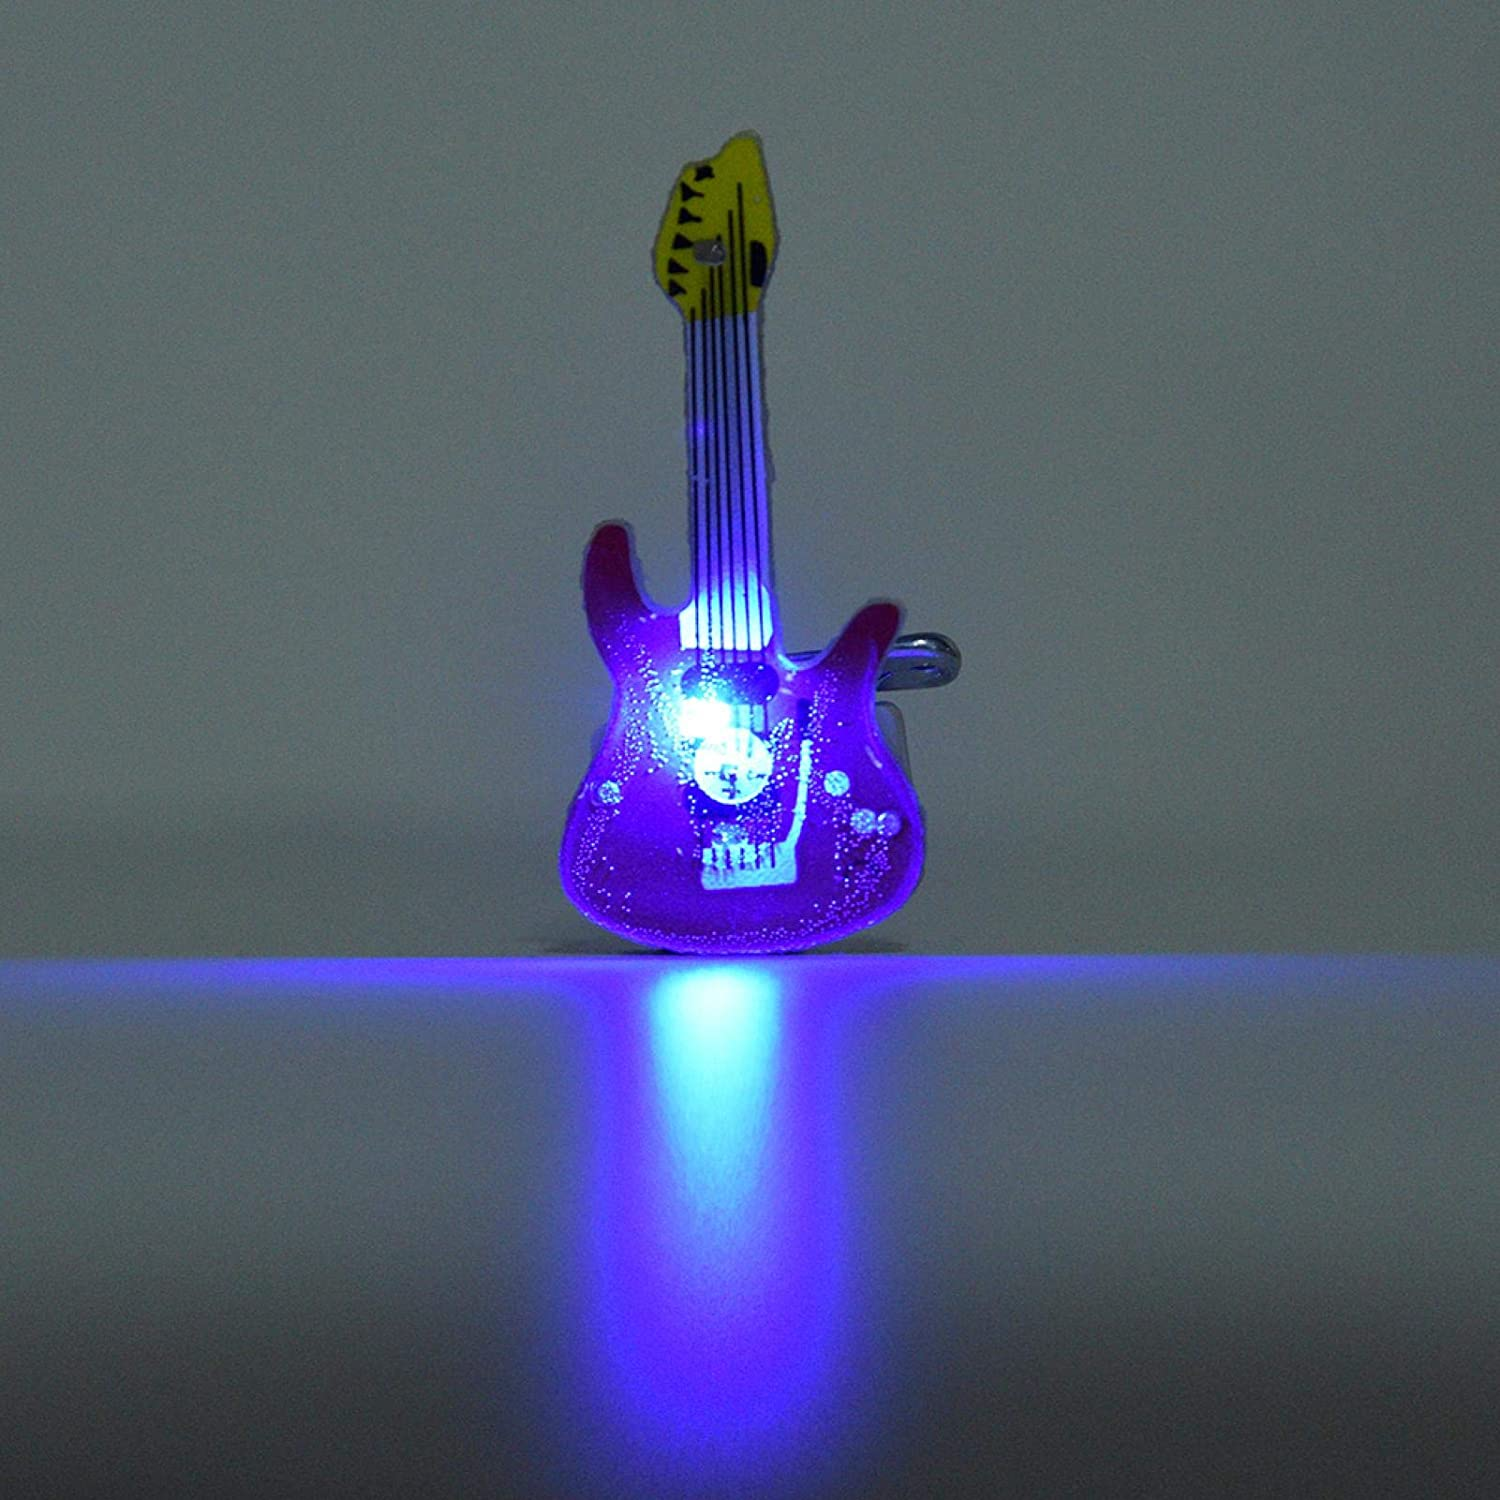 Surprise price Plastic Brooch Electric Guitar for Limited time cheap sale Suit Appre Christmas